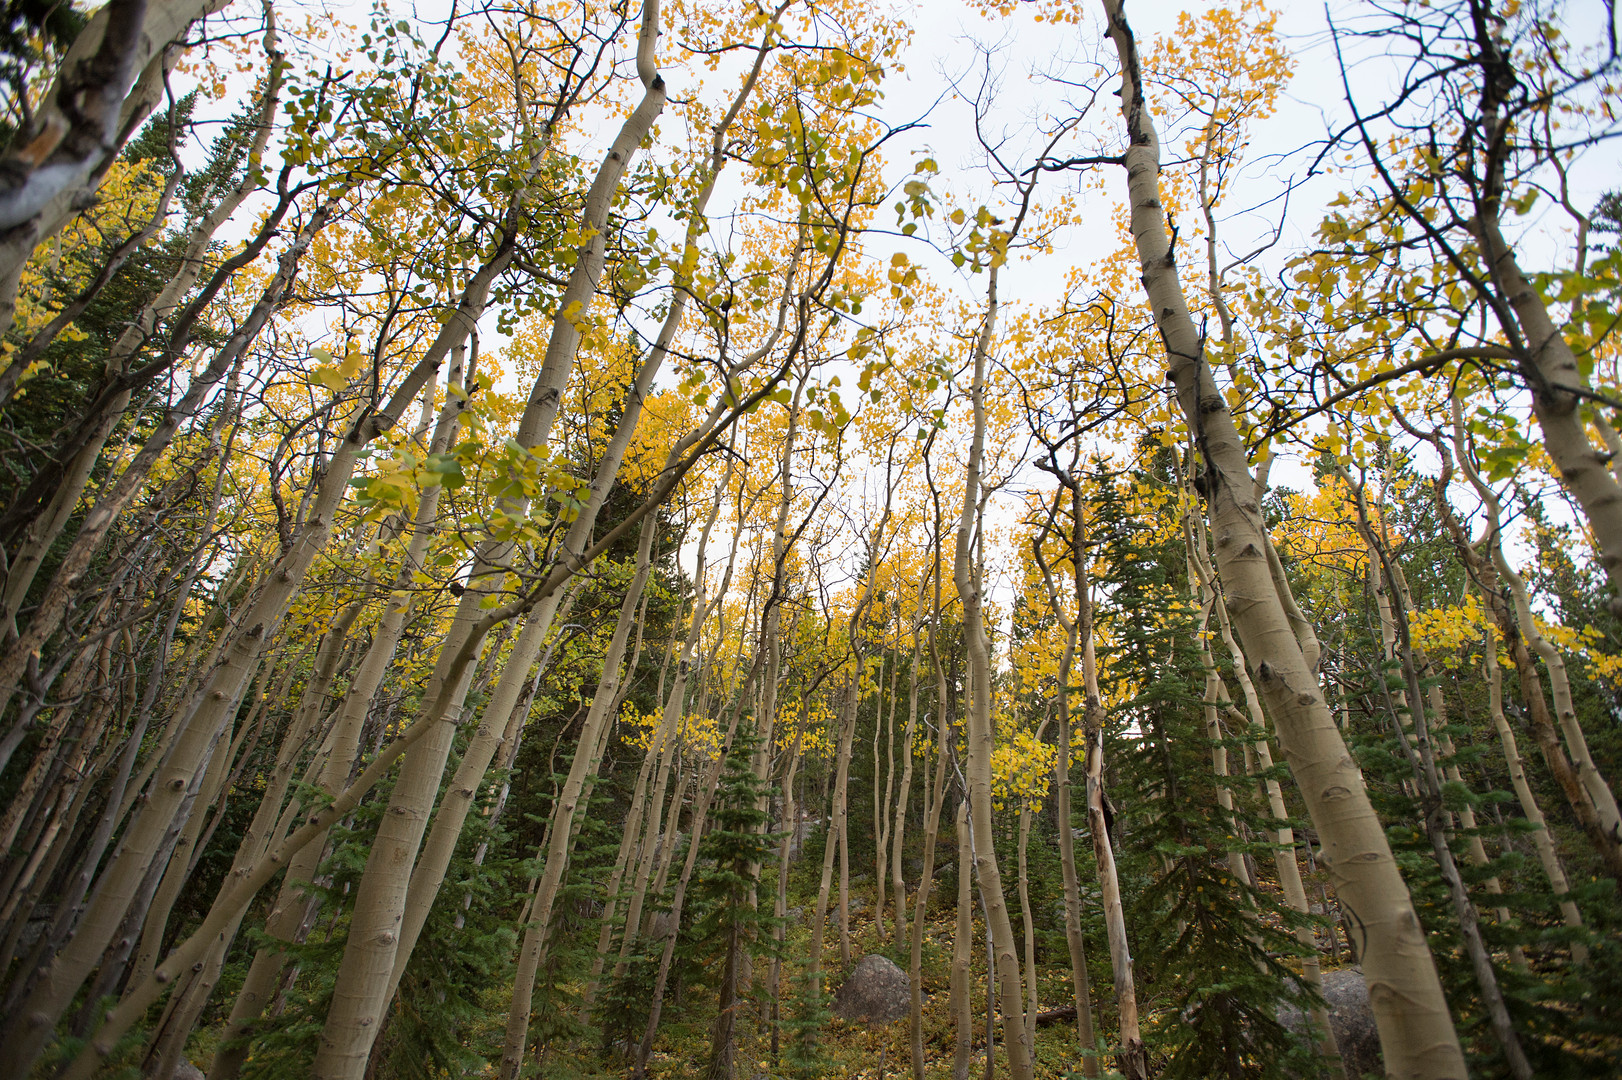 Aspen trees begin to show their first signs of fall color near the Glacier Gorge trailhead Wednesday, September 16, 2015.